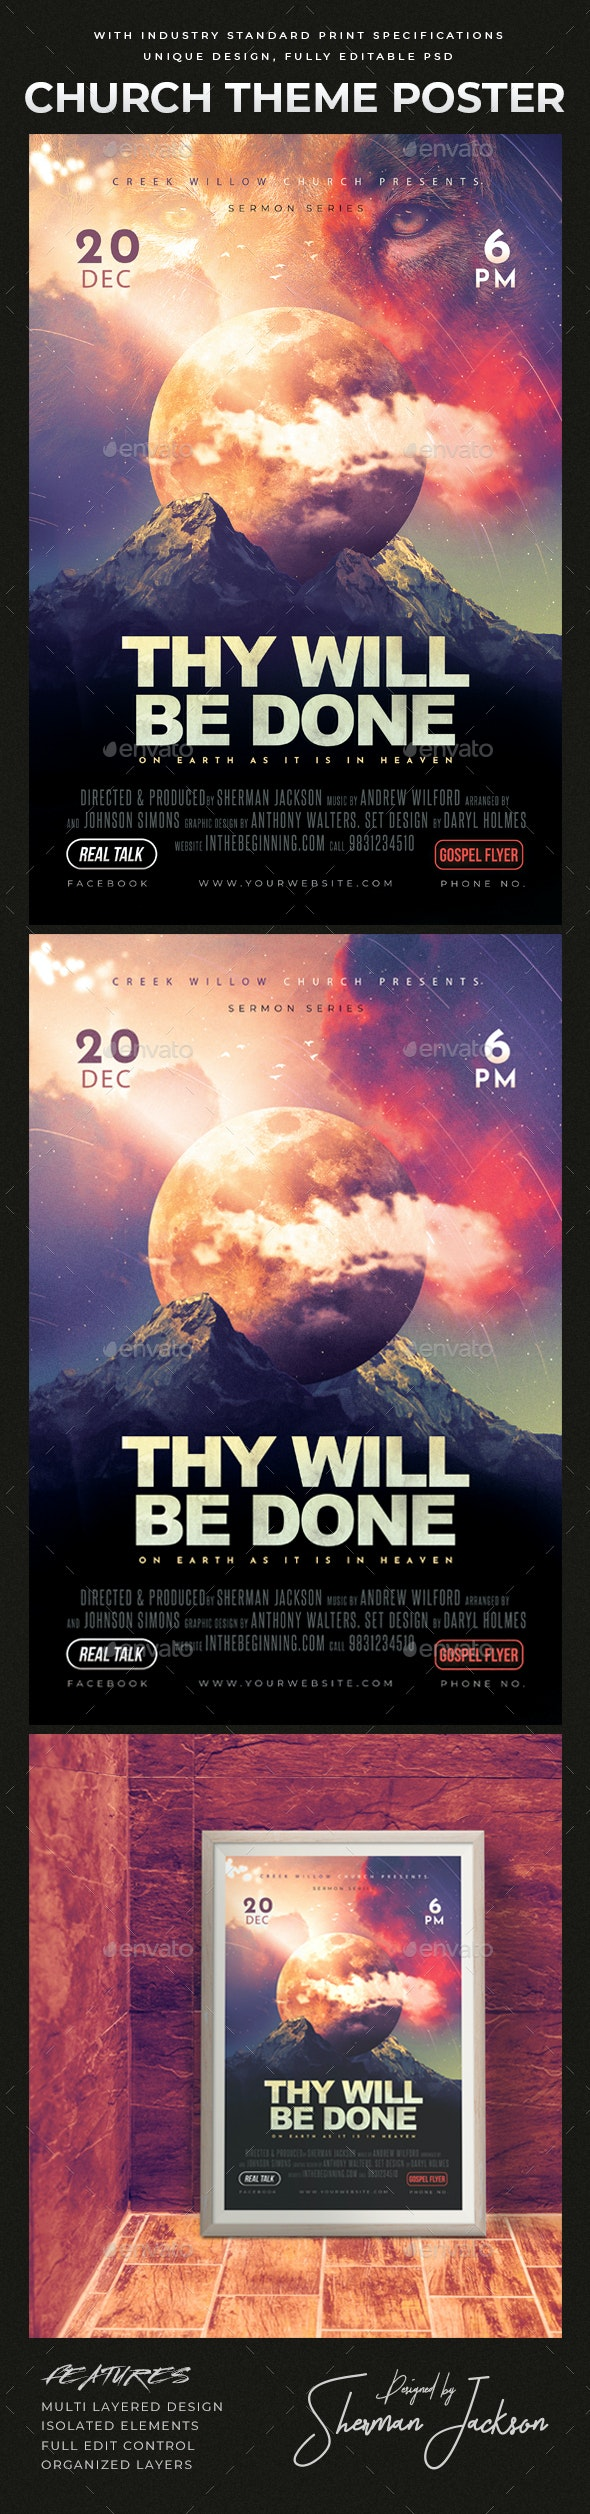 Church Themed Event Poster - Thy Will - Church Flyers